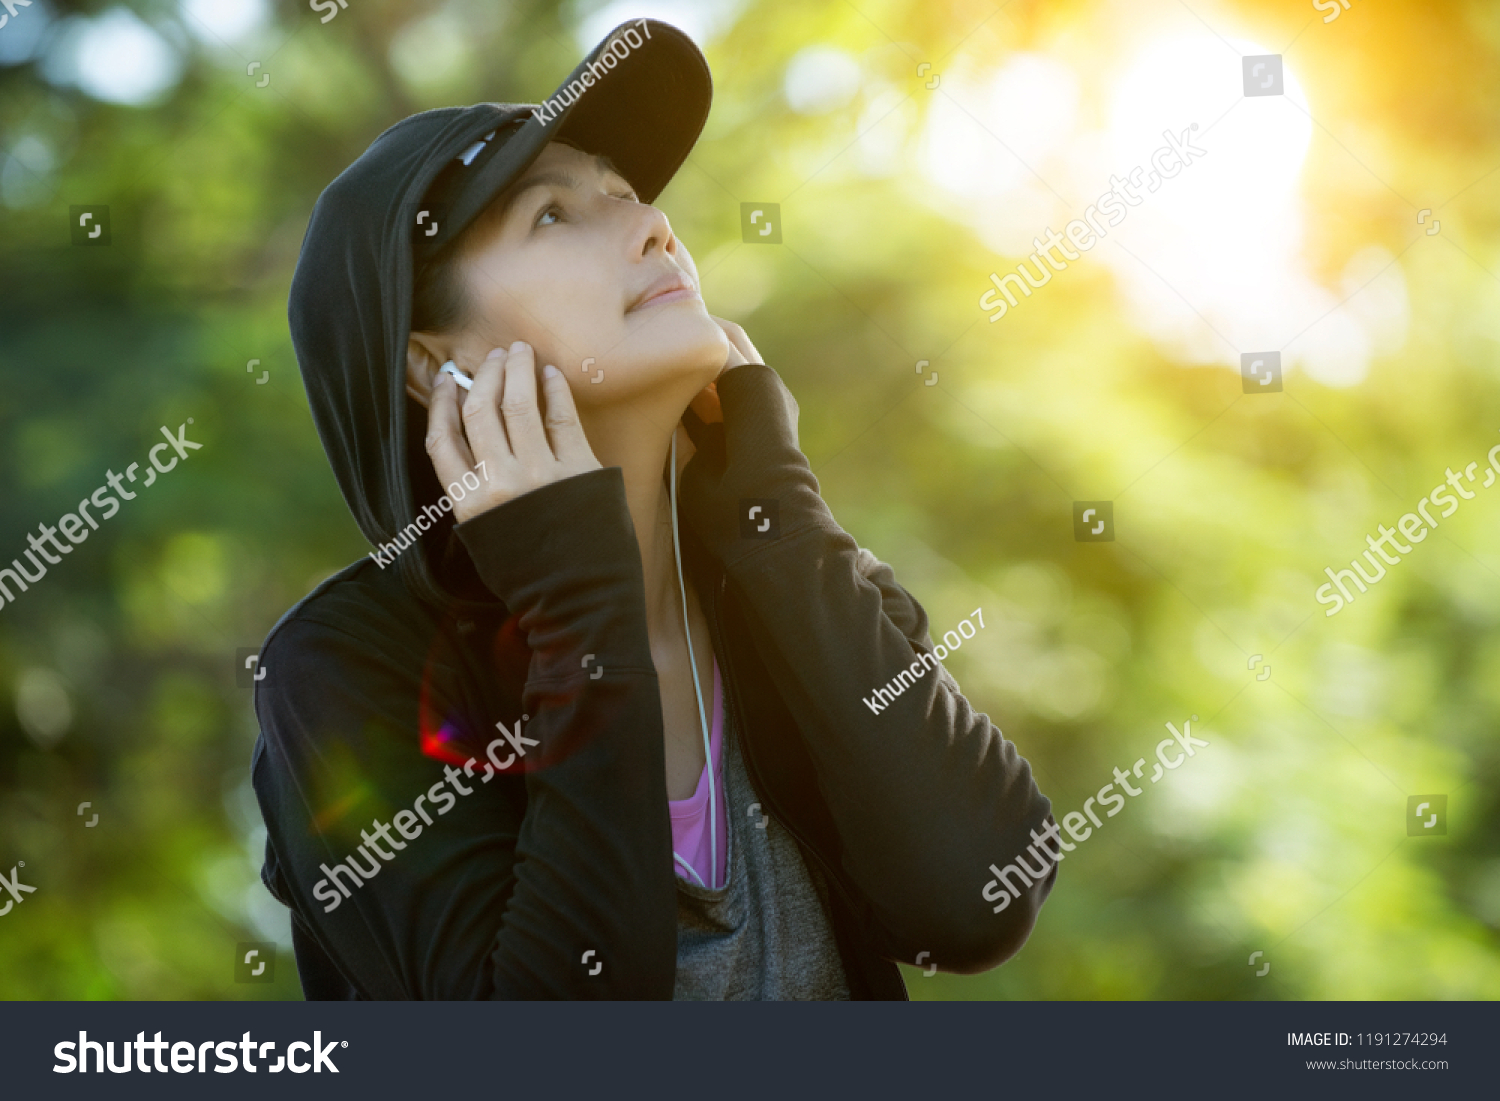 Young joyful woman asian sitting alone in a park and listening to music on earphones